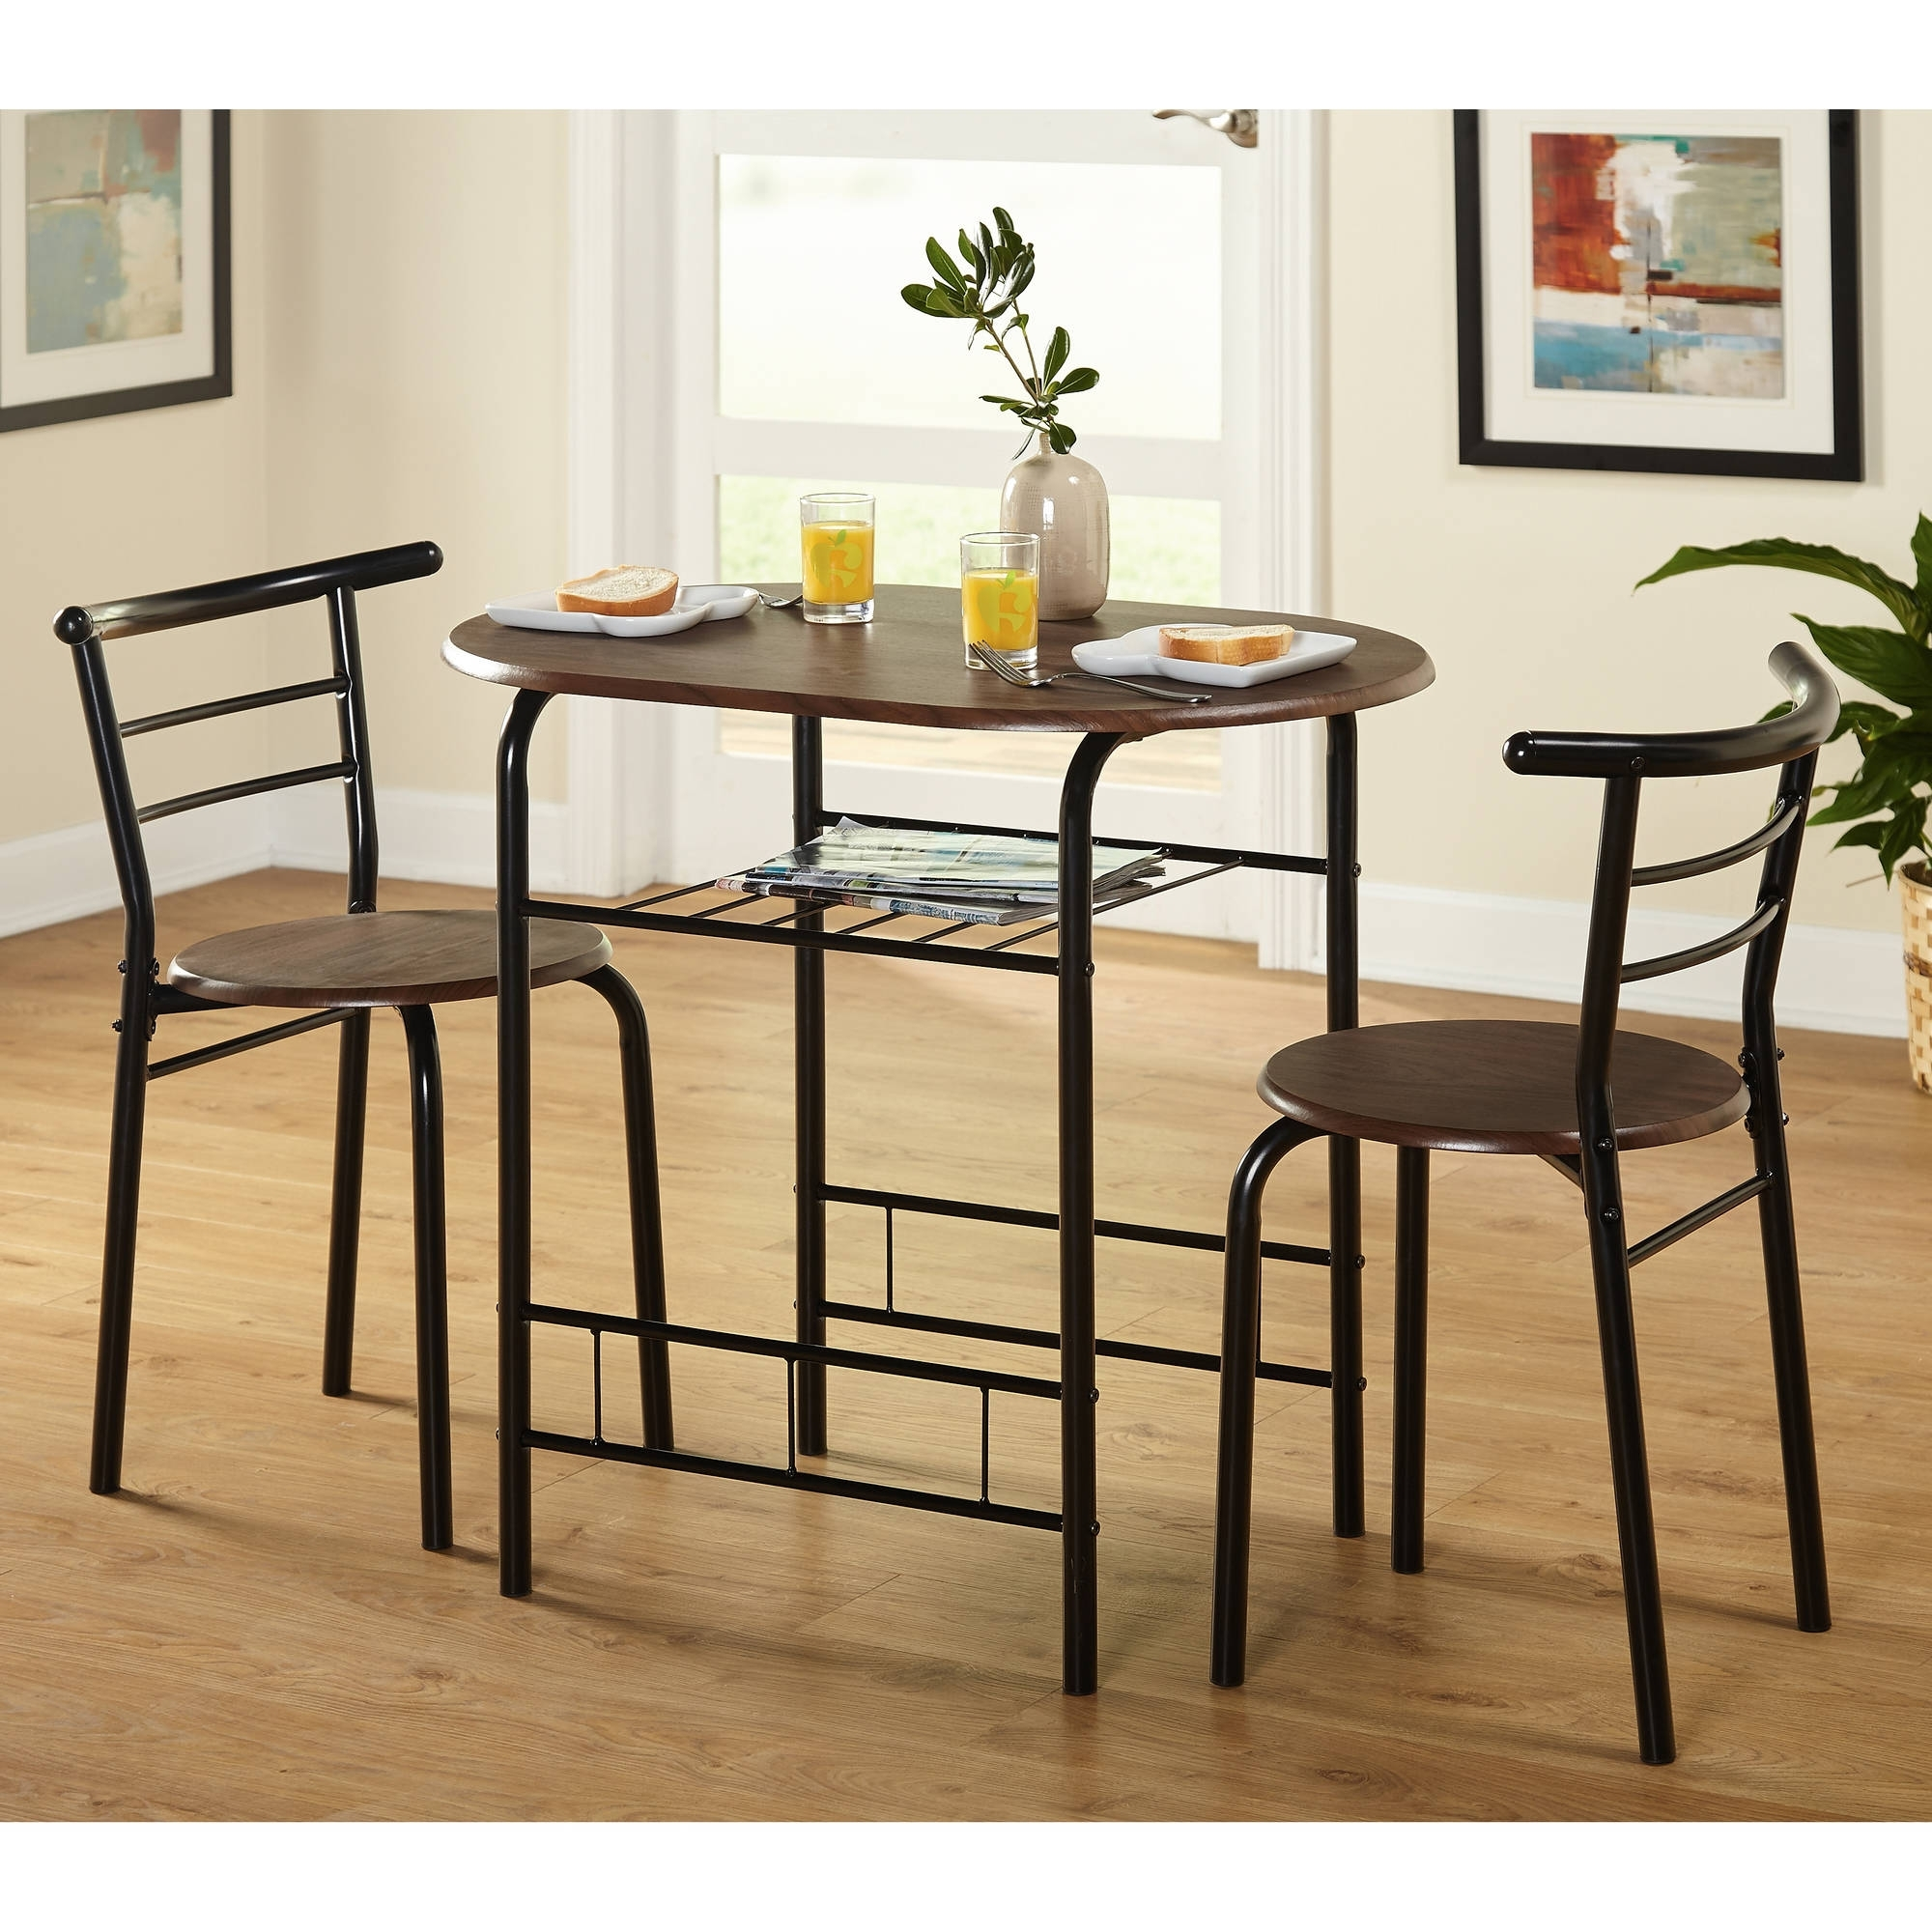 Most Up To Date Dining Table Sets For 2 For Tms 3 Piece Bistro Dining Set – Walmart (View 20 of 25)